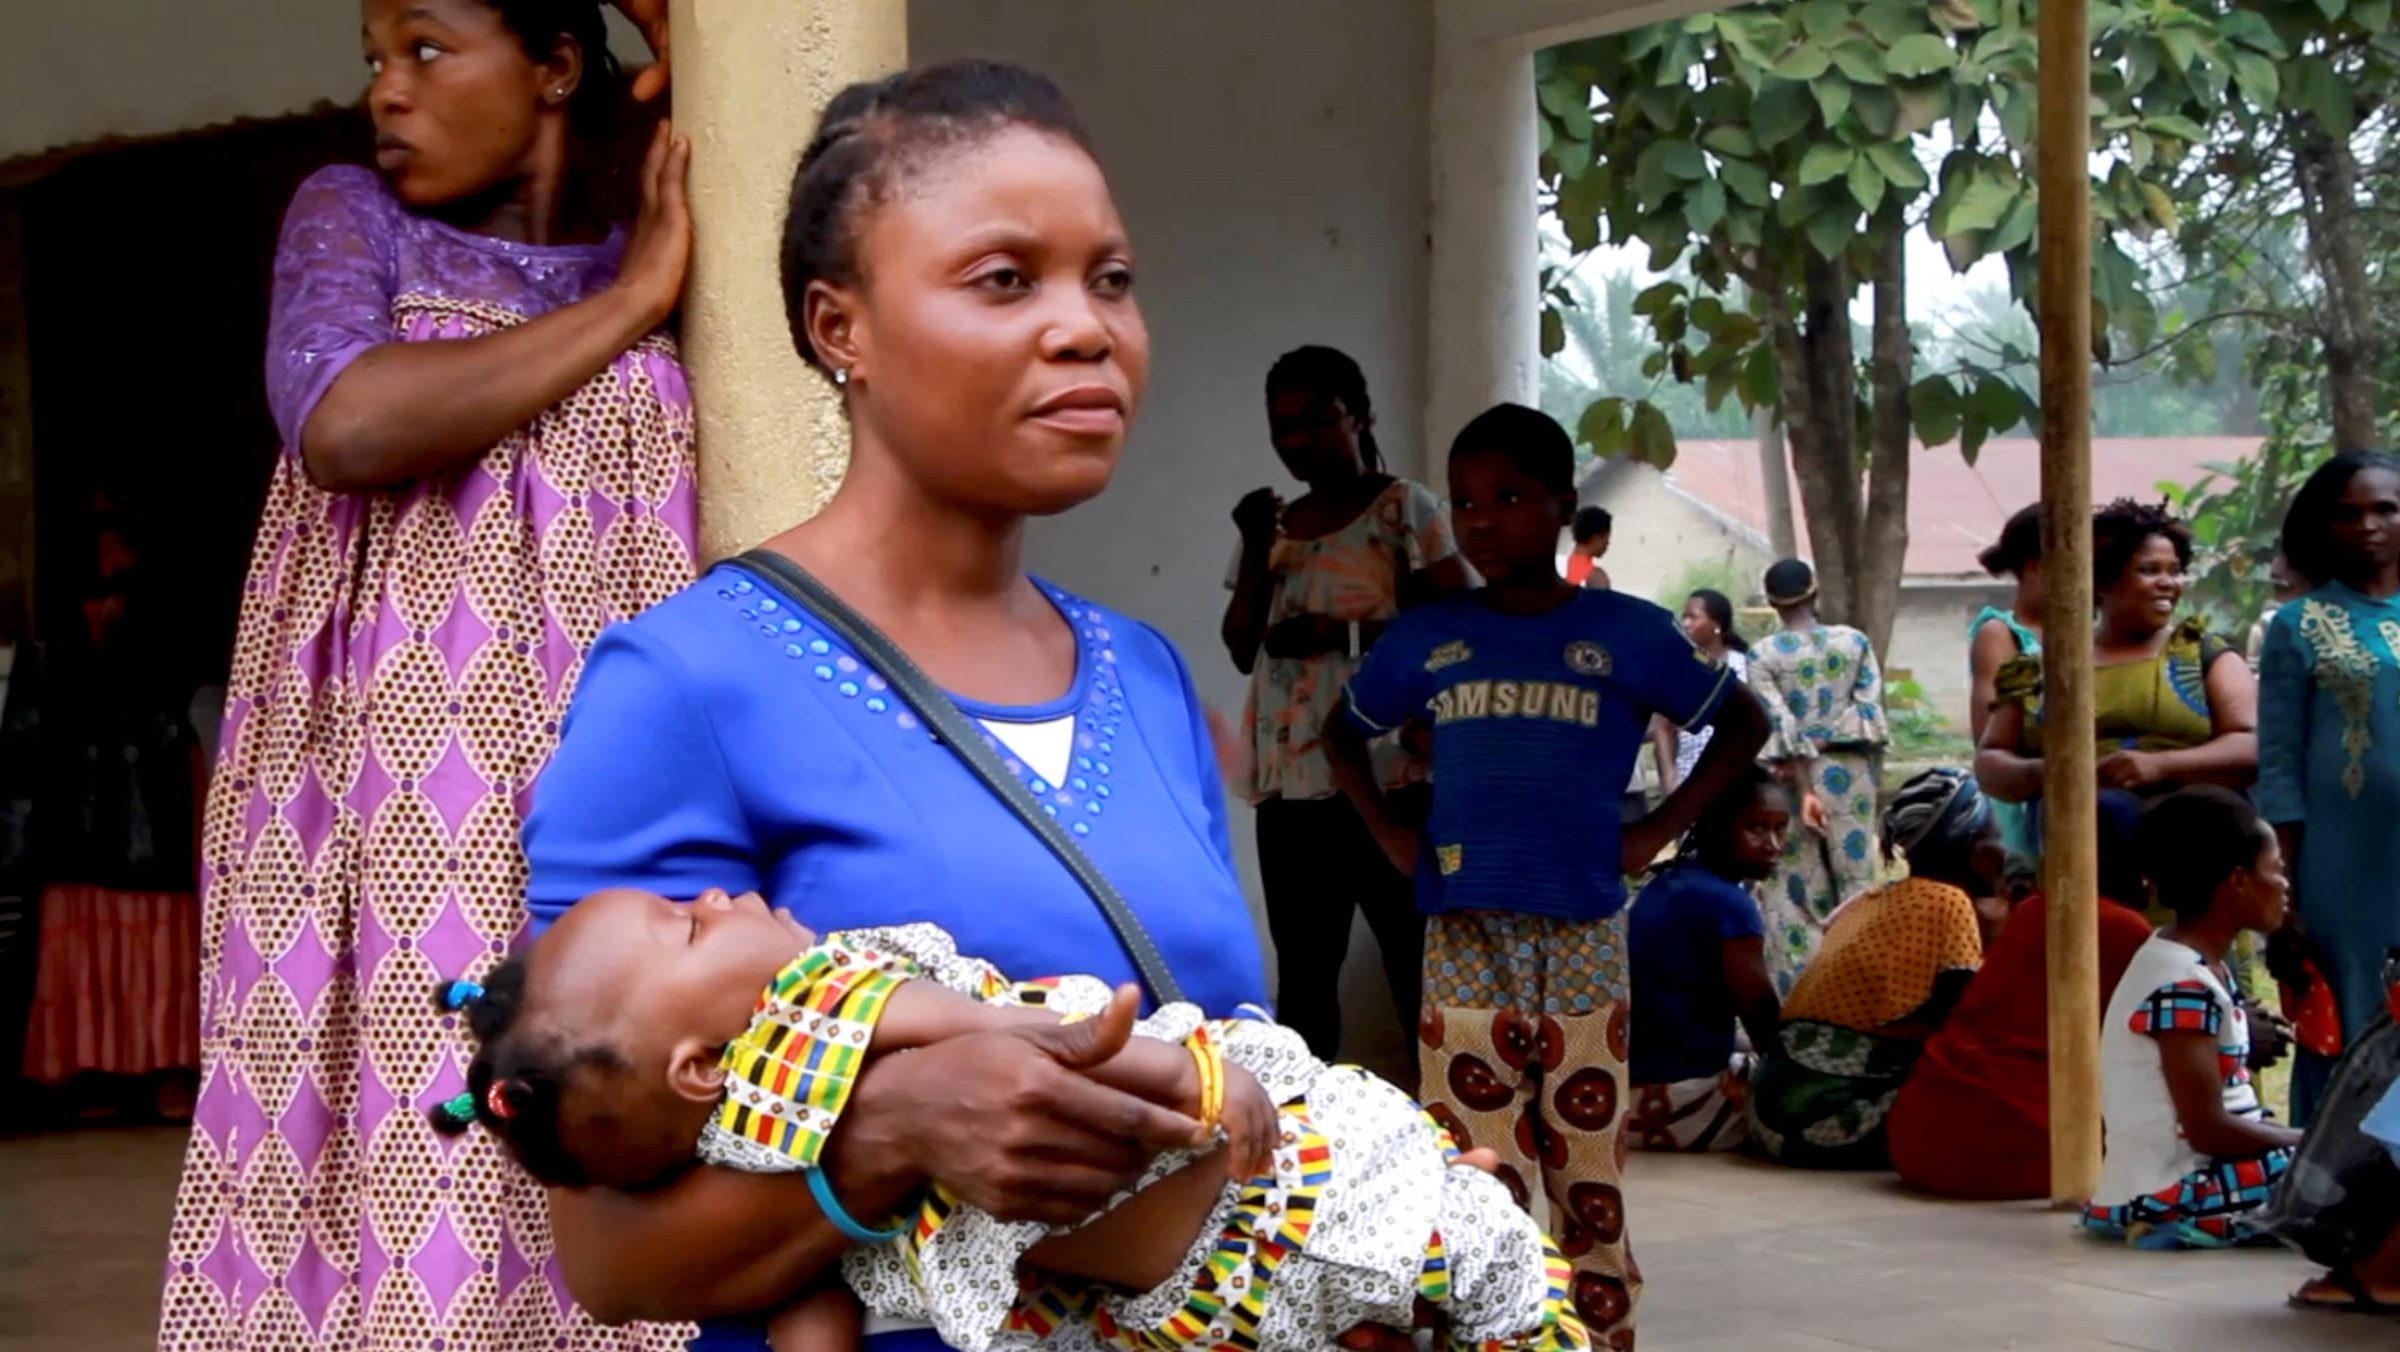 A still image taken from a video shot on December 9, 2017 shows a Cameroonian refugee woman carrying a child outside a center in Agbokim Waterfalls village, which borders on Cameroon, Nigeria.